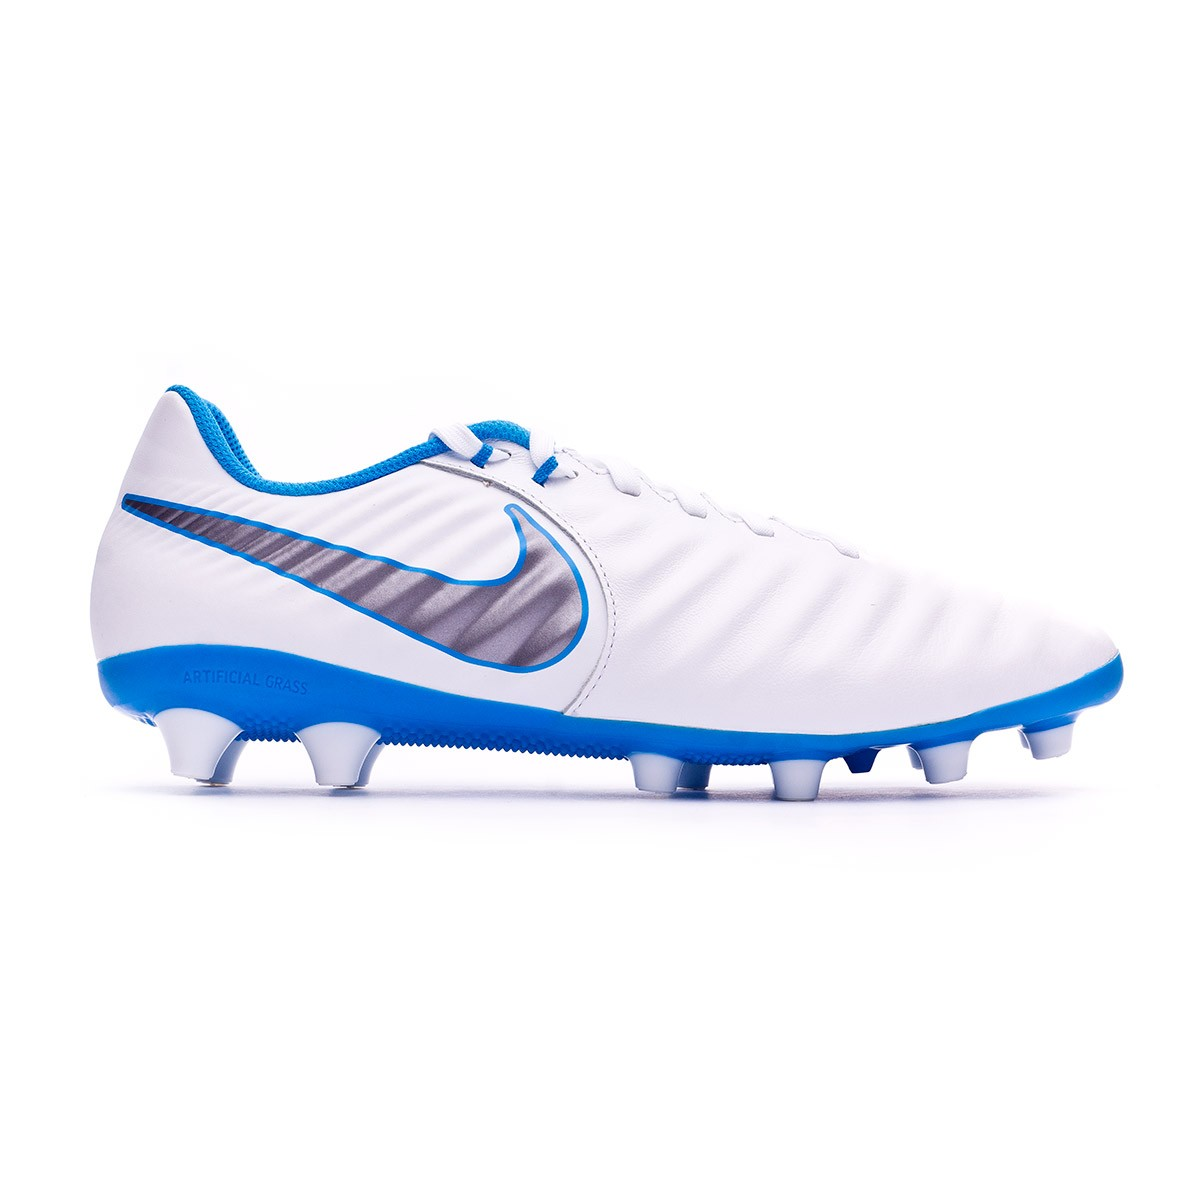 24dc6a88b34 Football Boots Nike Tiempo Legend VII Academy AG-Pro White-Metallic cool  grey-Blue hero - Football store Fútbol Emotion